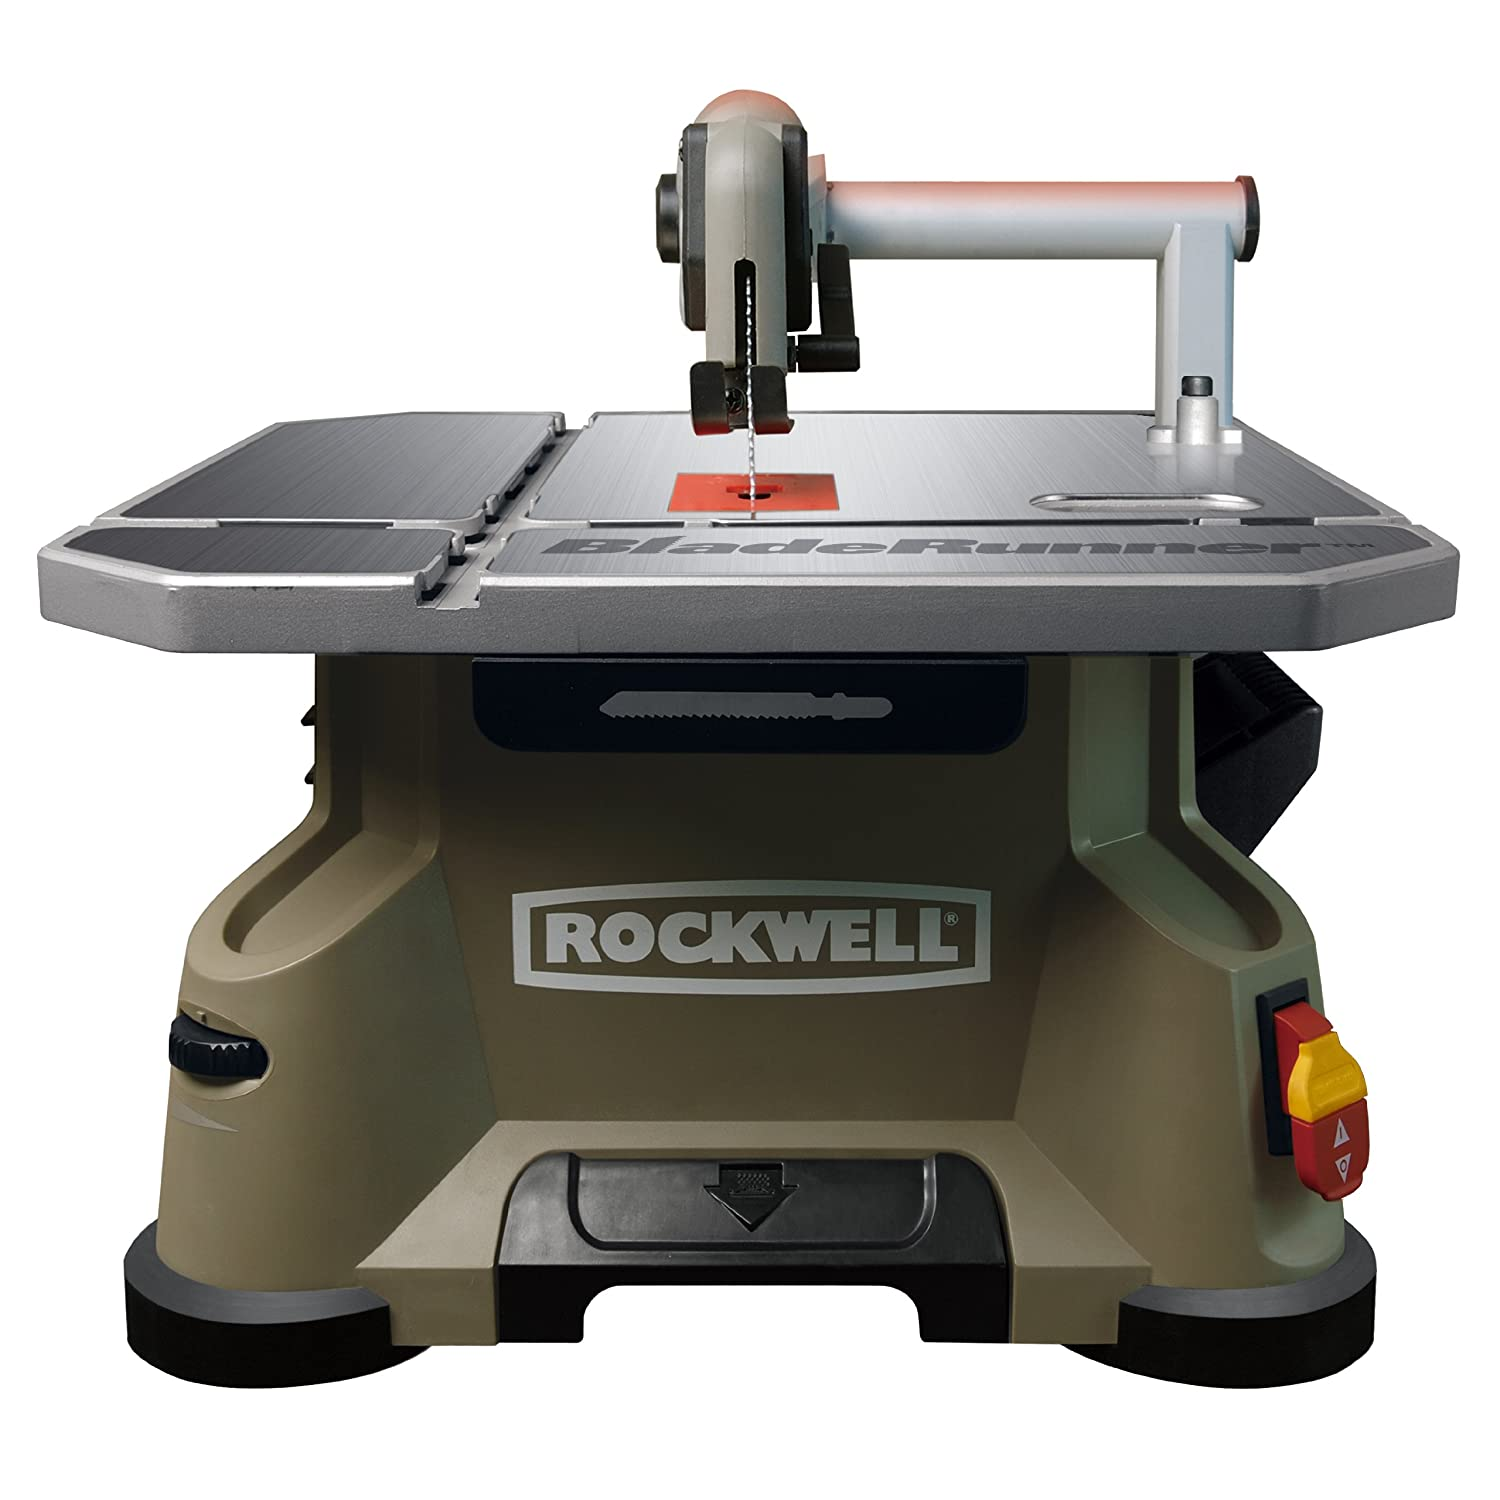 Rockwell Rk7321 Bladerunner Scroll Saw W Wall Mount Ebay